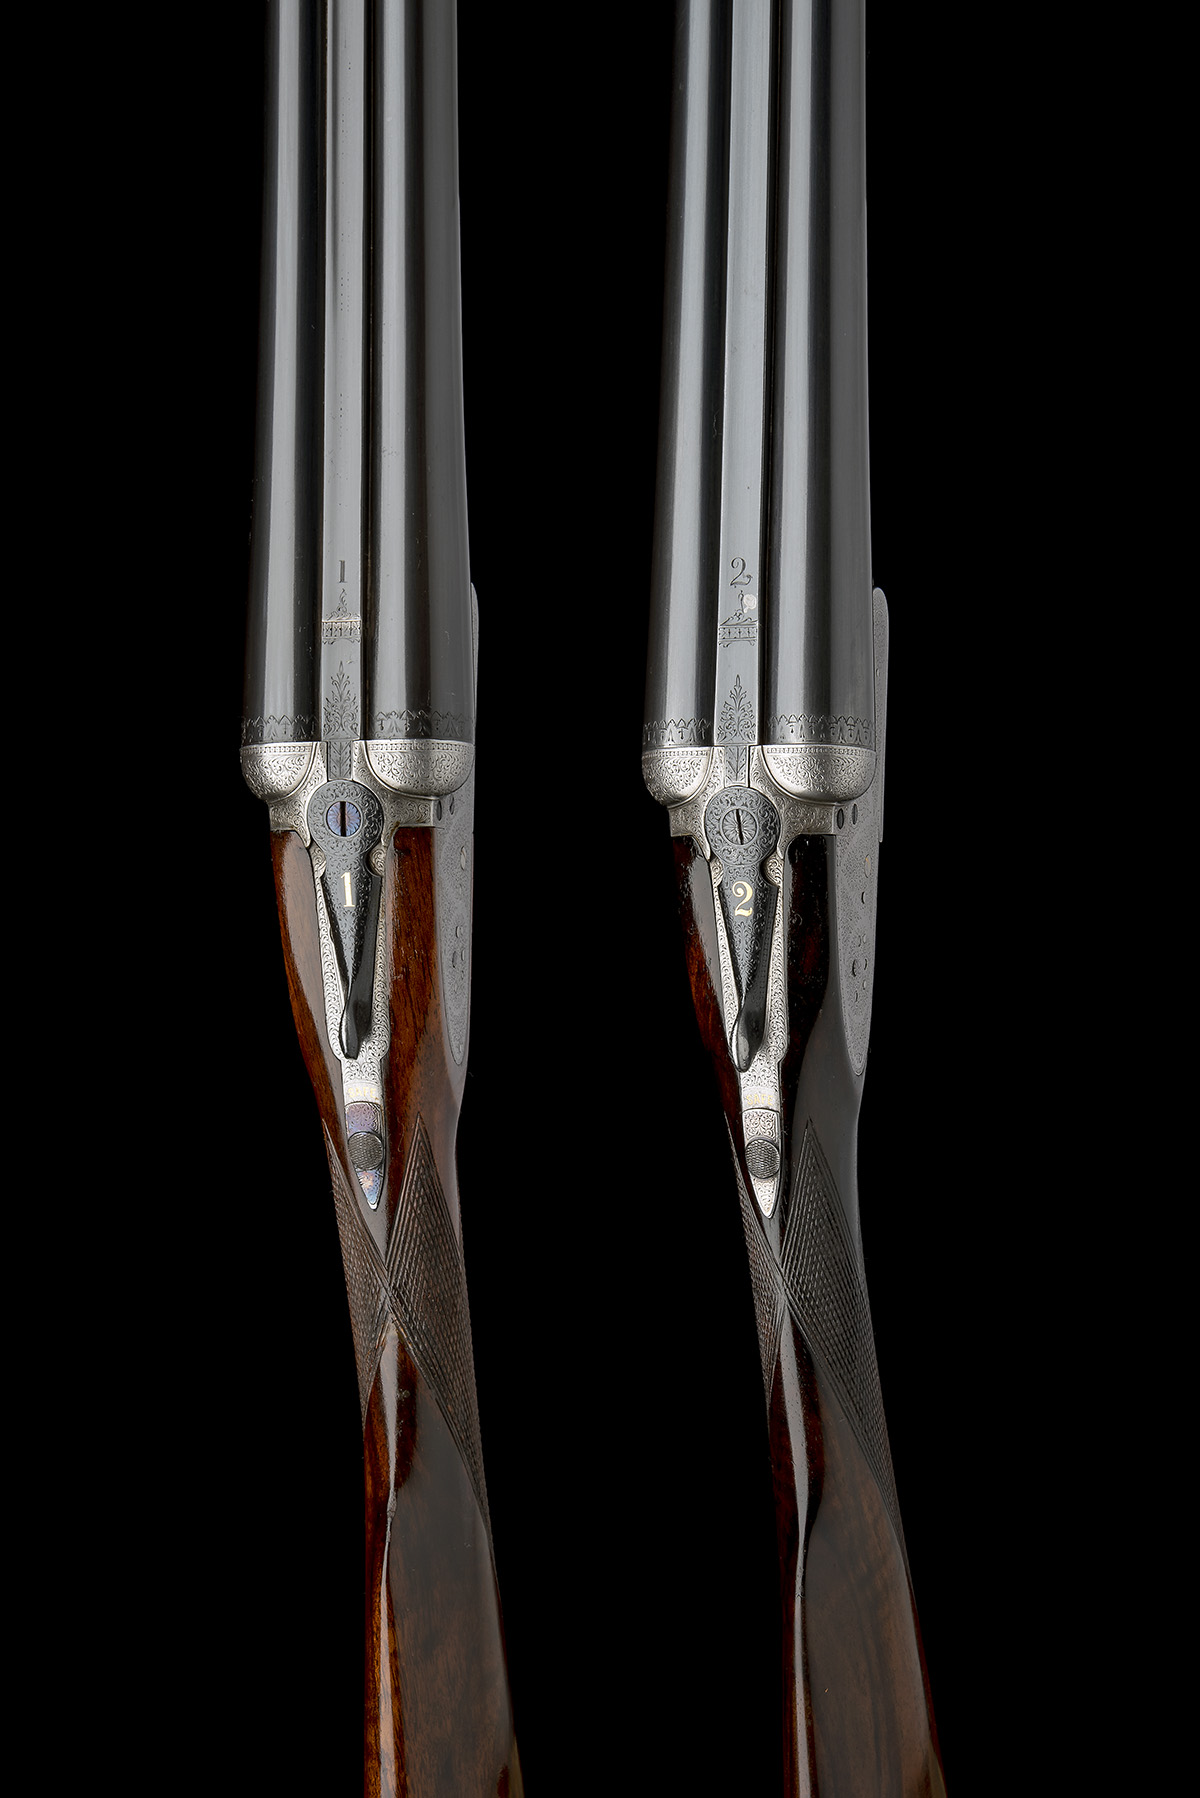 B. NORMAN A PAIR OF 12-BORE SIDELOCK EJECTORS, serial no. 2051 / 2, first quarter of the 20th - Image 6 of 8